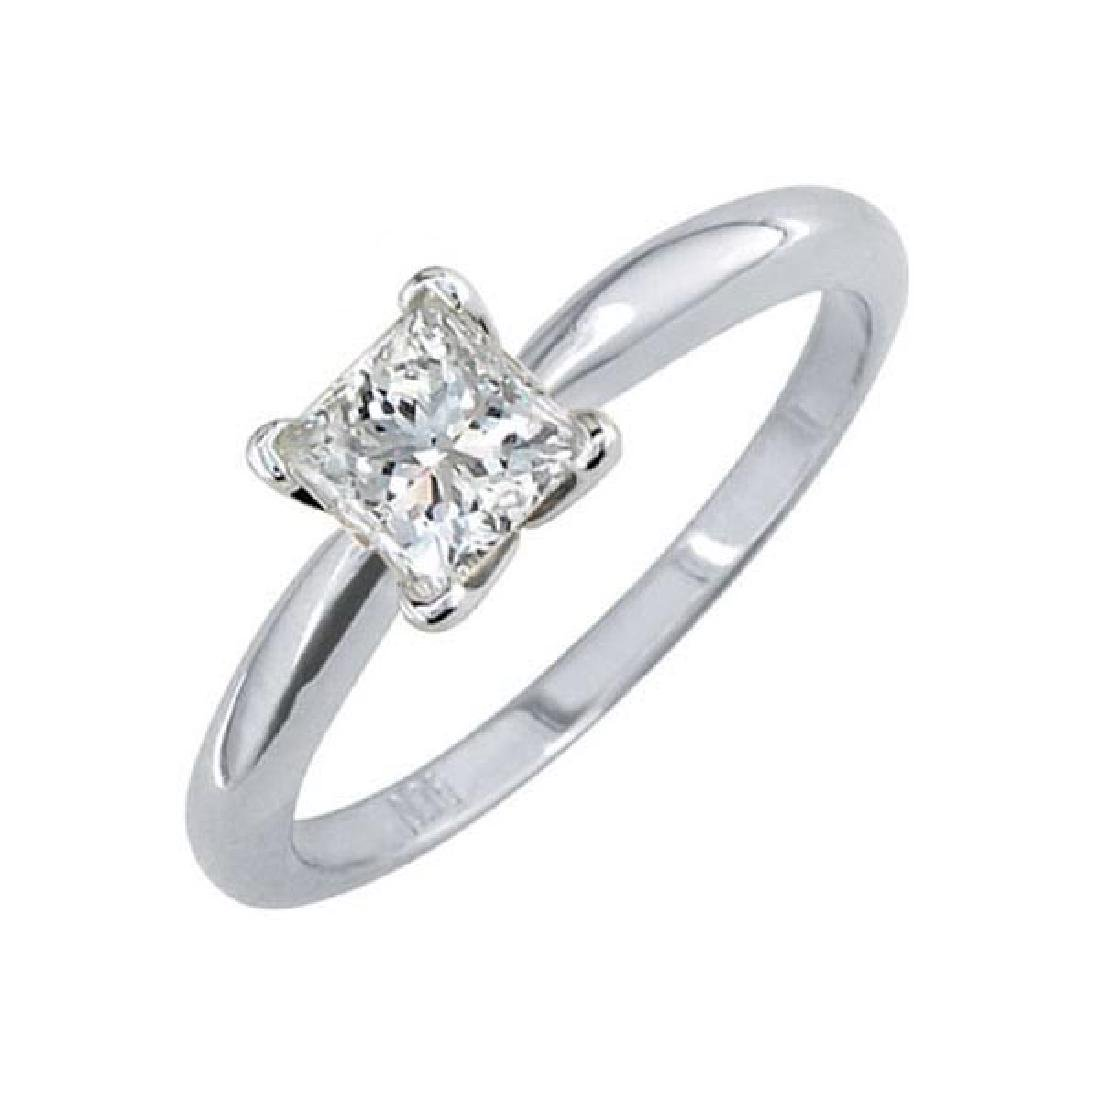 Certified 1.22 CTW Princess Diamond Solitaire 14k Ring